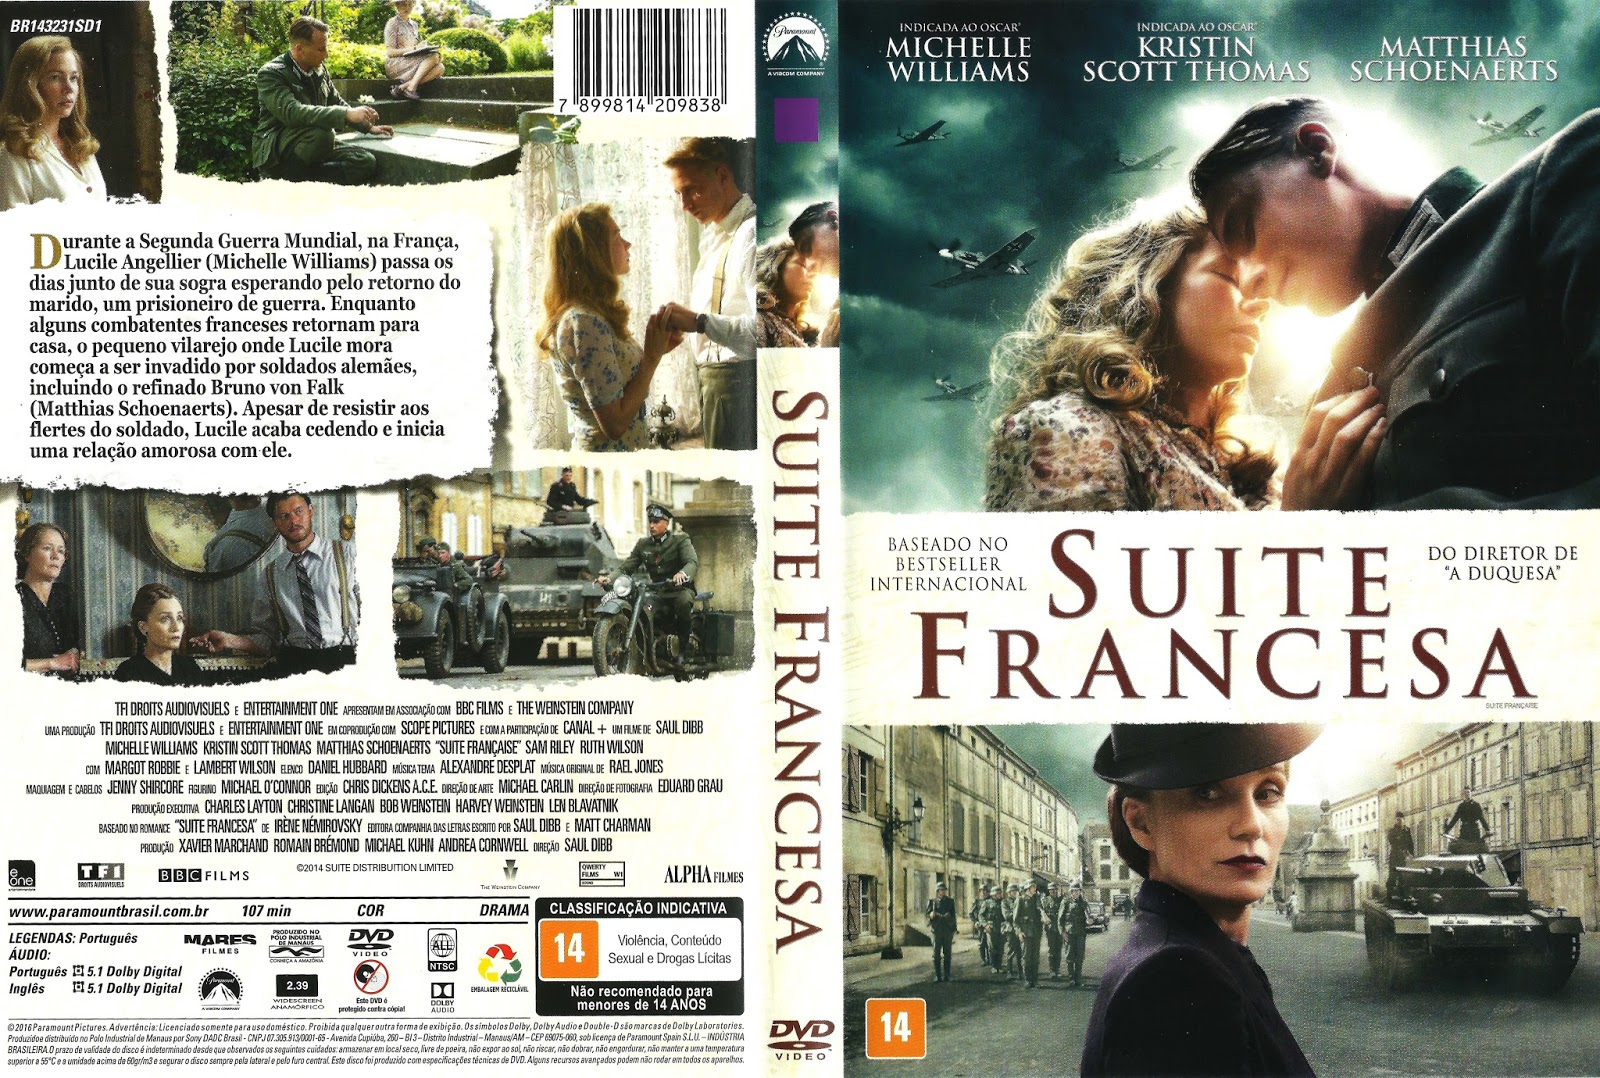 Suite Francesa BDRip XviD Dual Áudio Suite 2BFrancesa 2B  2BXANDAODOWNLOAD